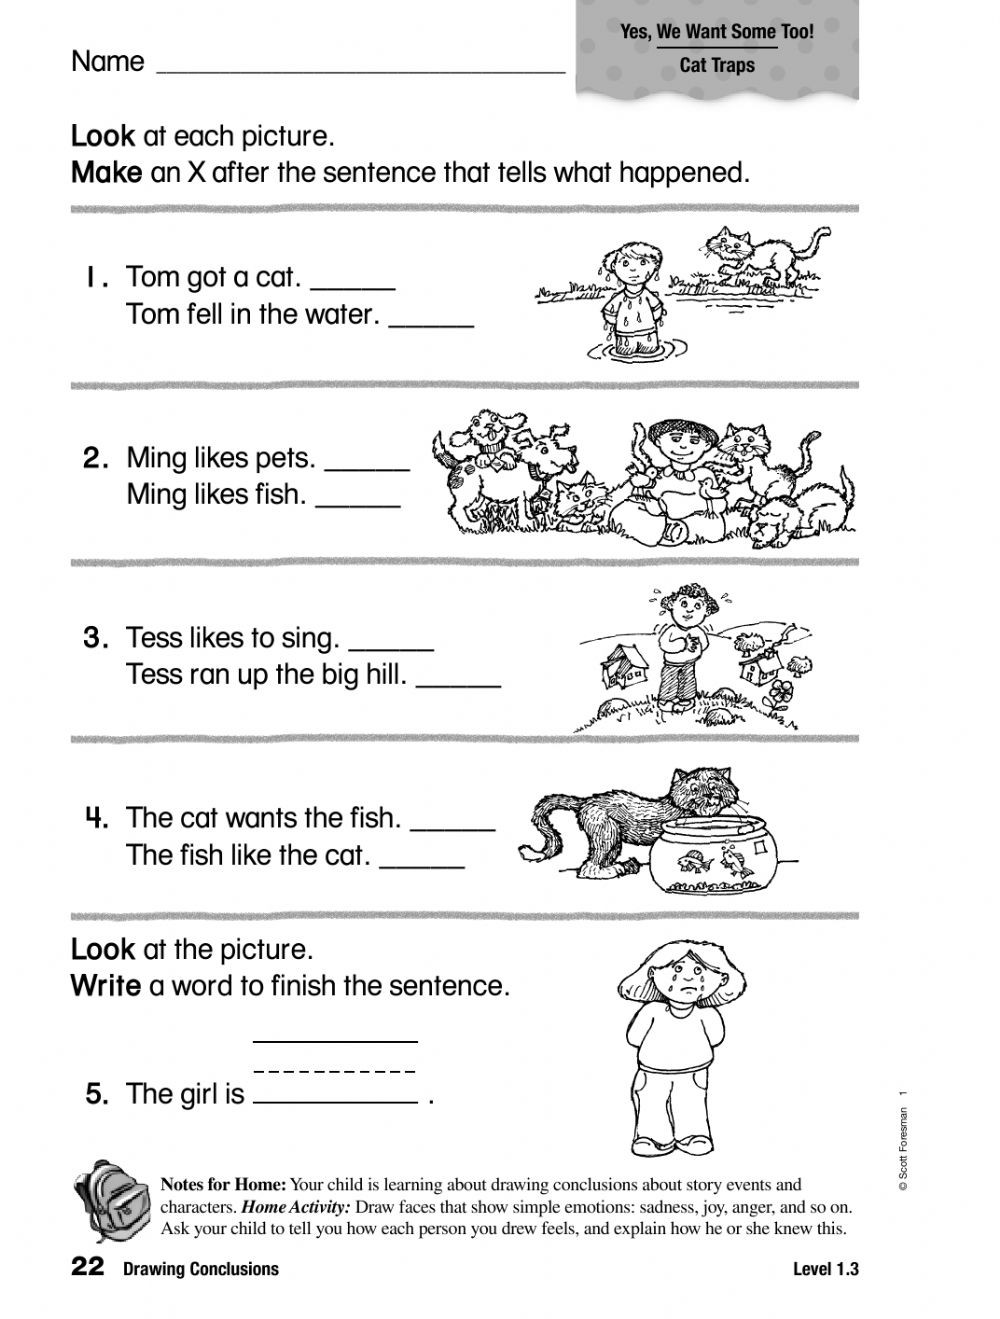 Drawing Conclusion Worksheets 3rd Grade Grade E Math Activities Name Tracer Worksheets Printables